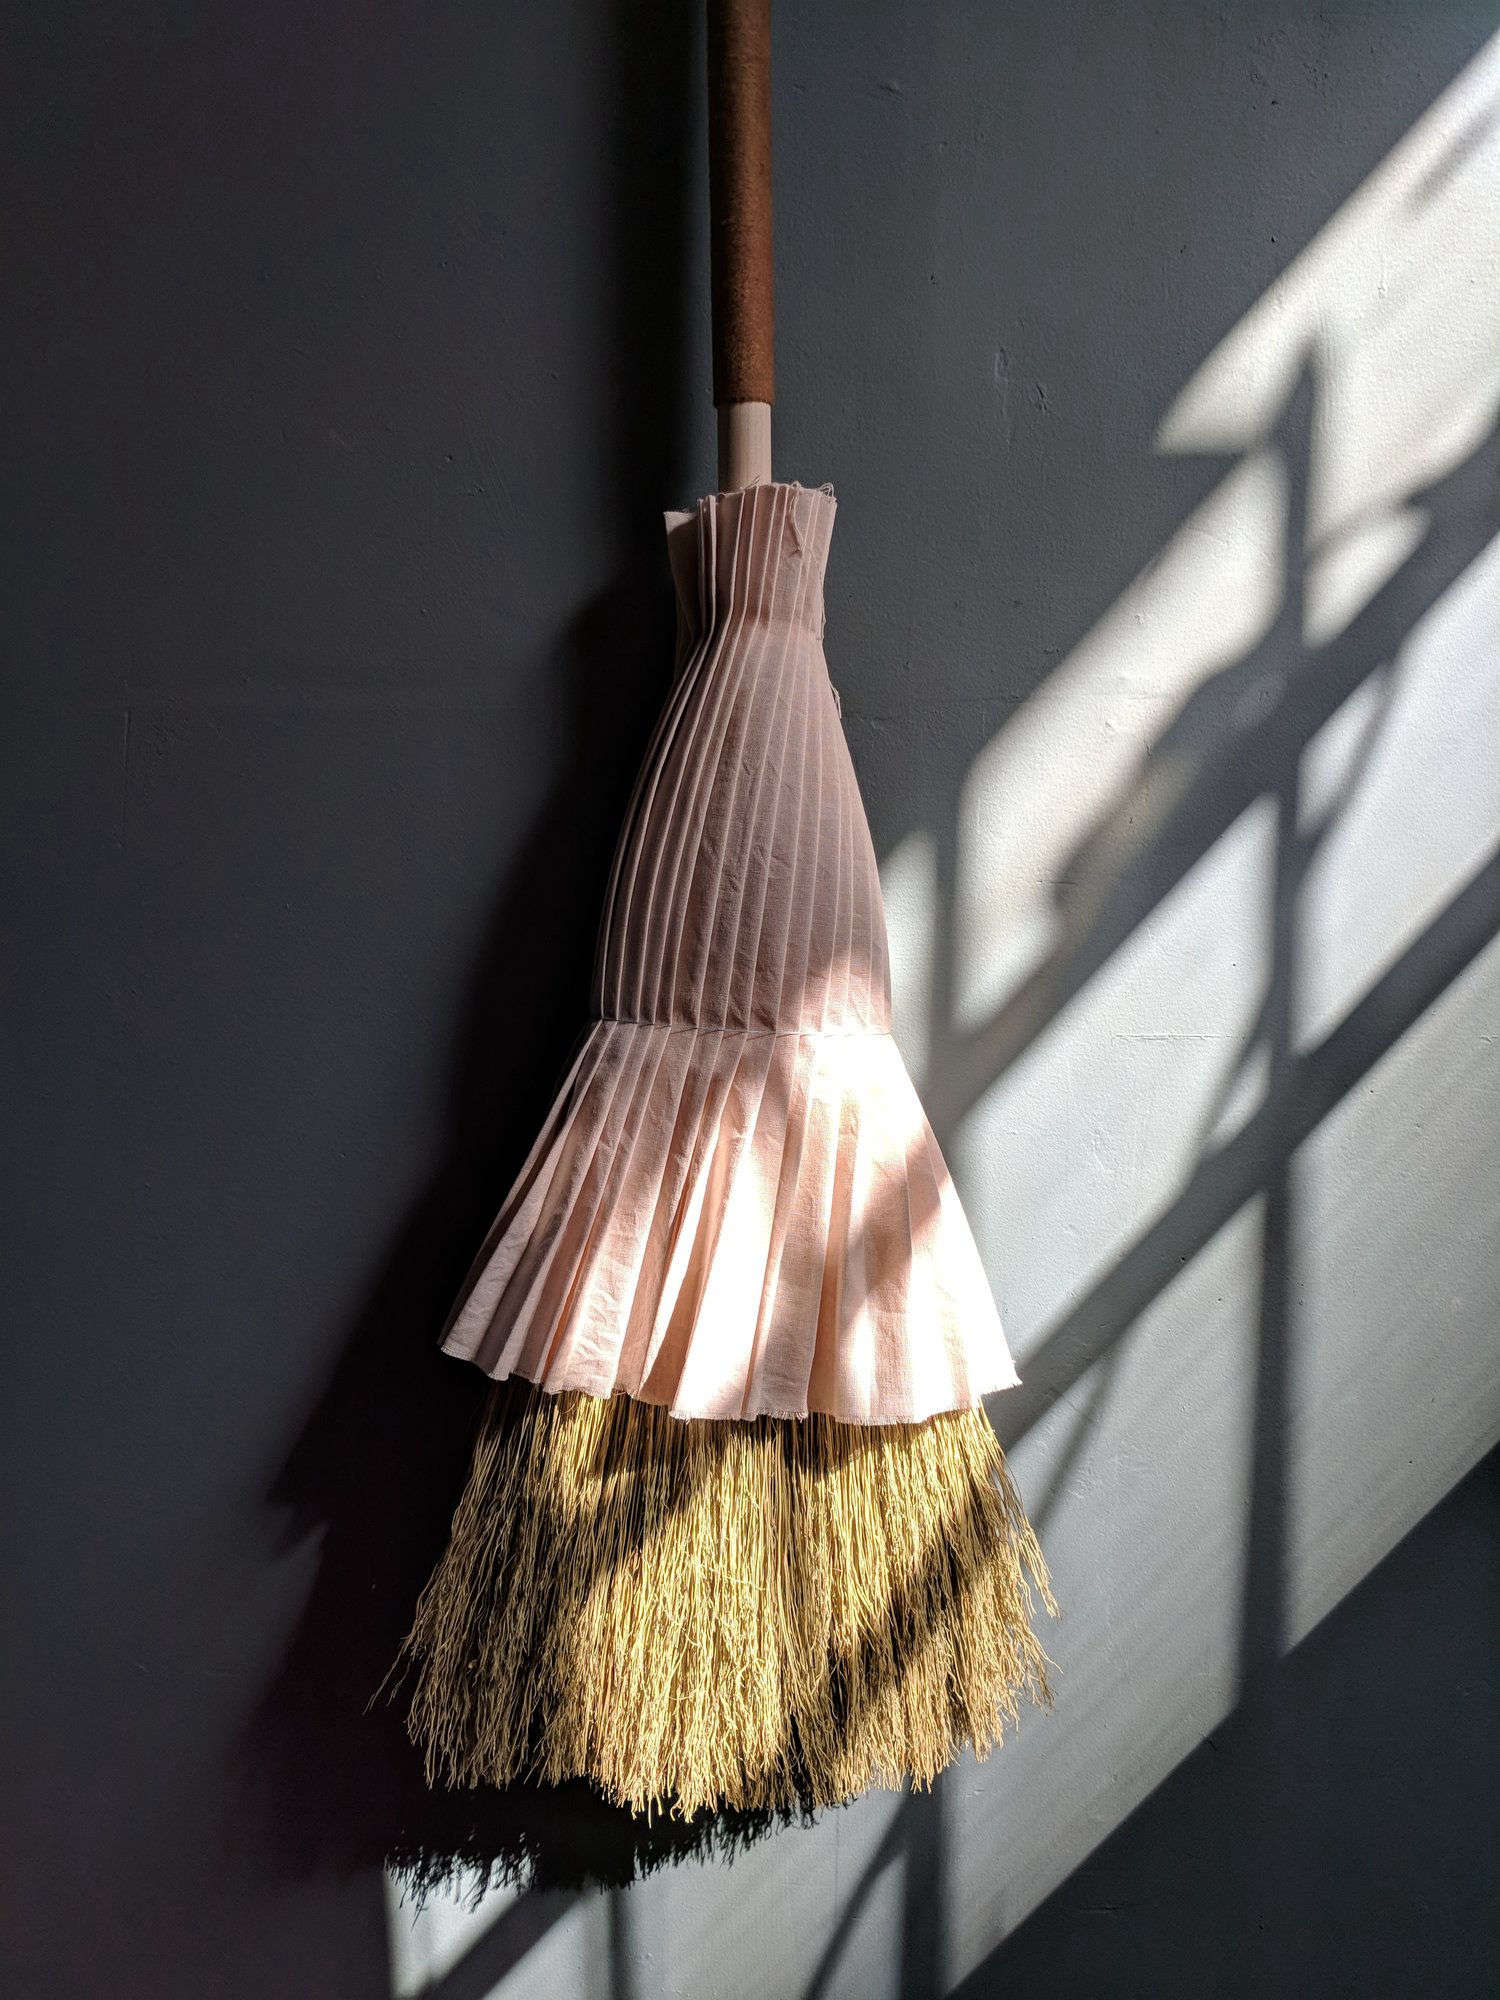 Object of Desire: Handmade Luxe Brooms from a Brooklyn Artist